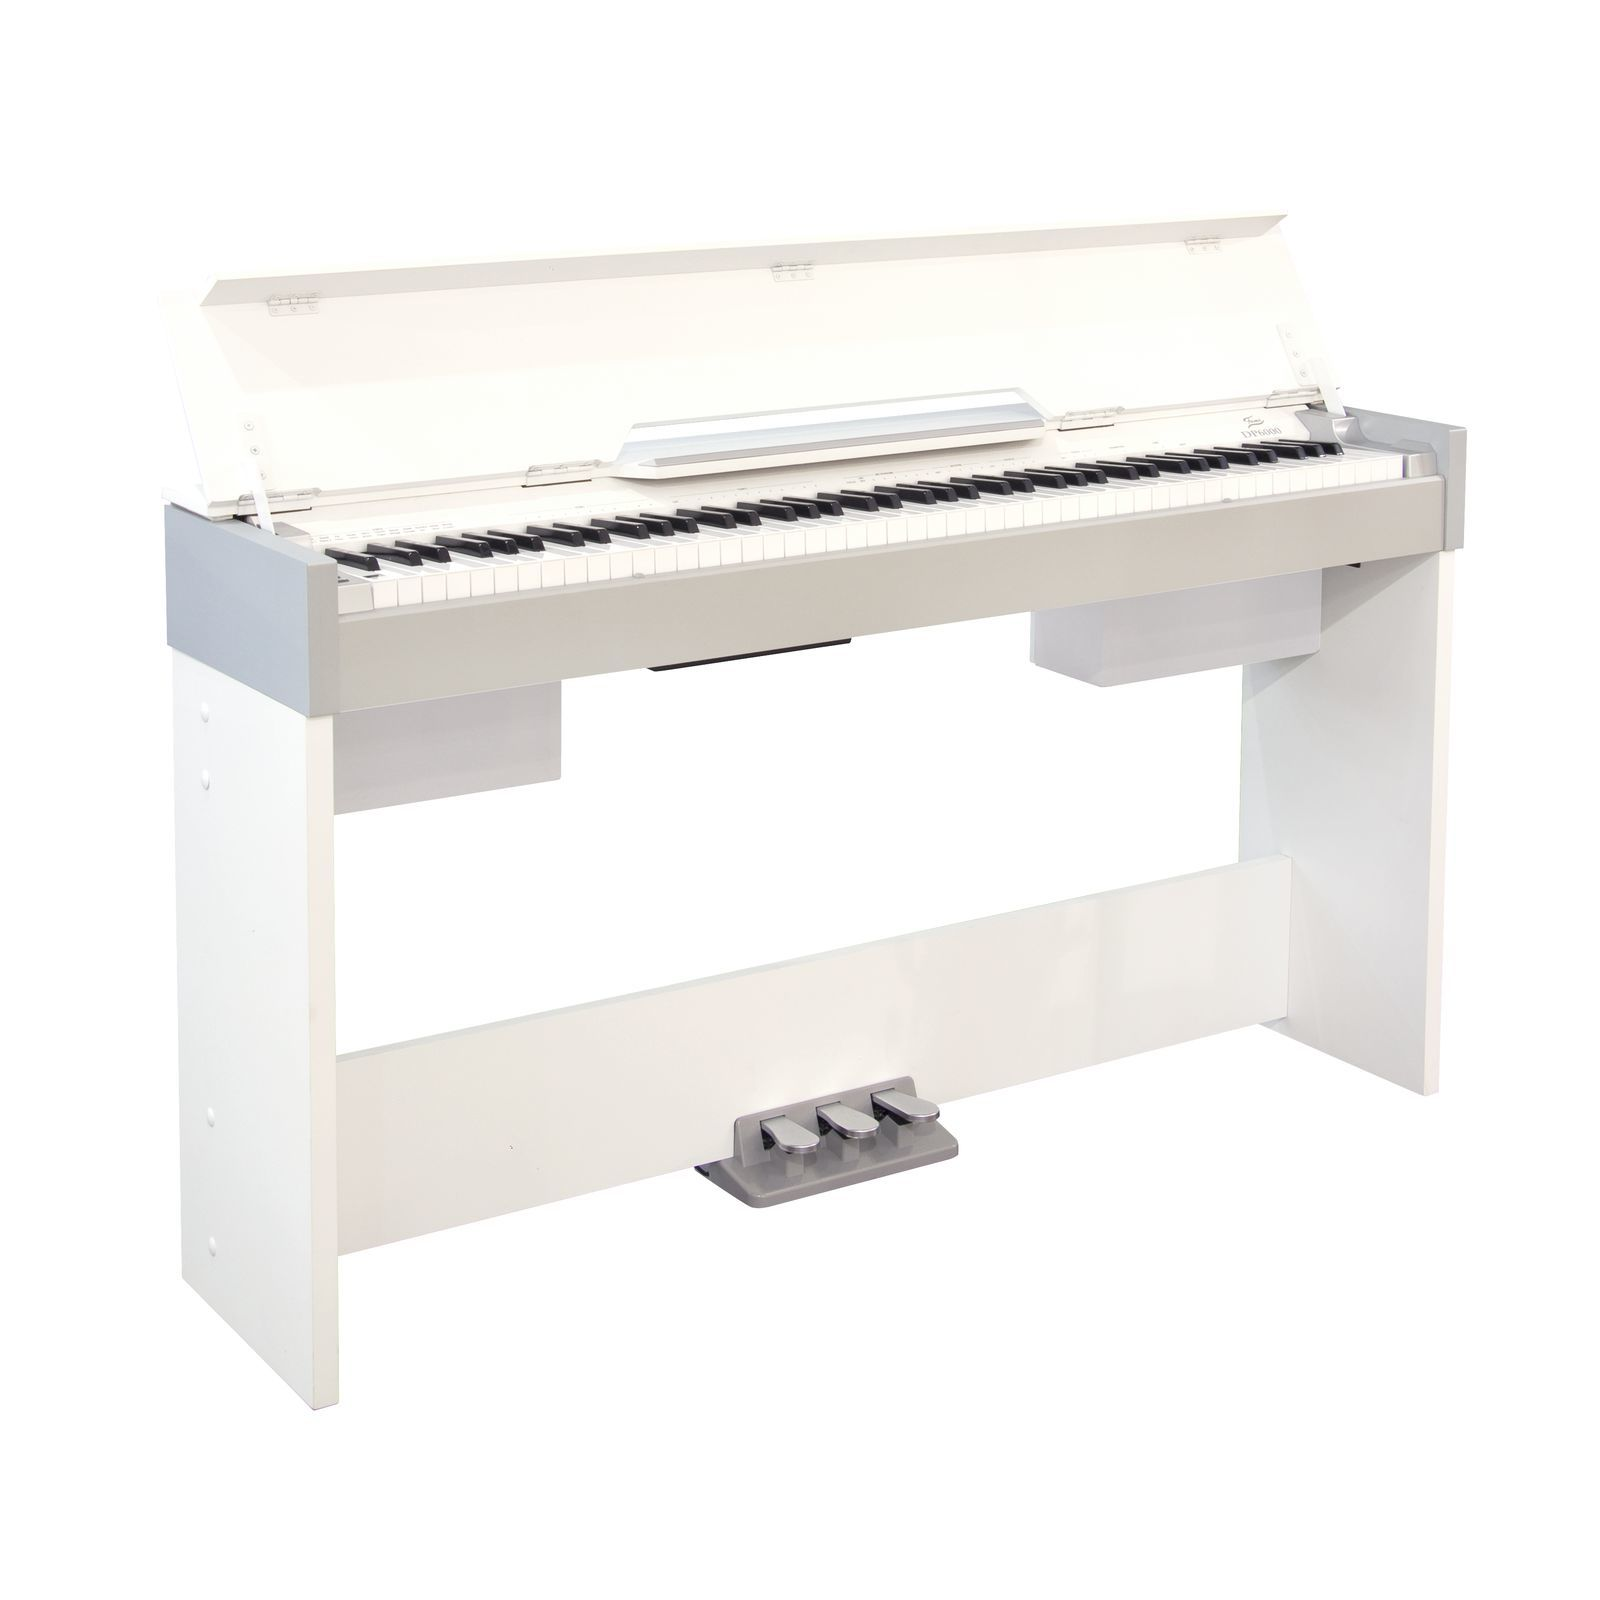 Fame DP-6000 Digital Piano White Produktbild